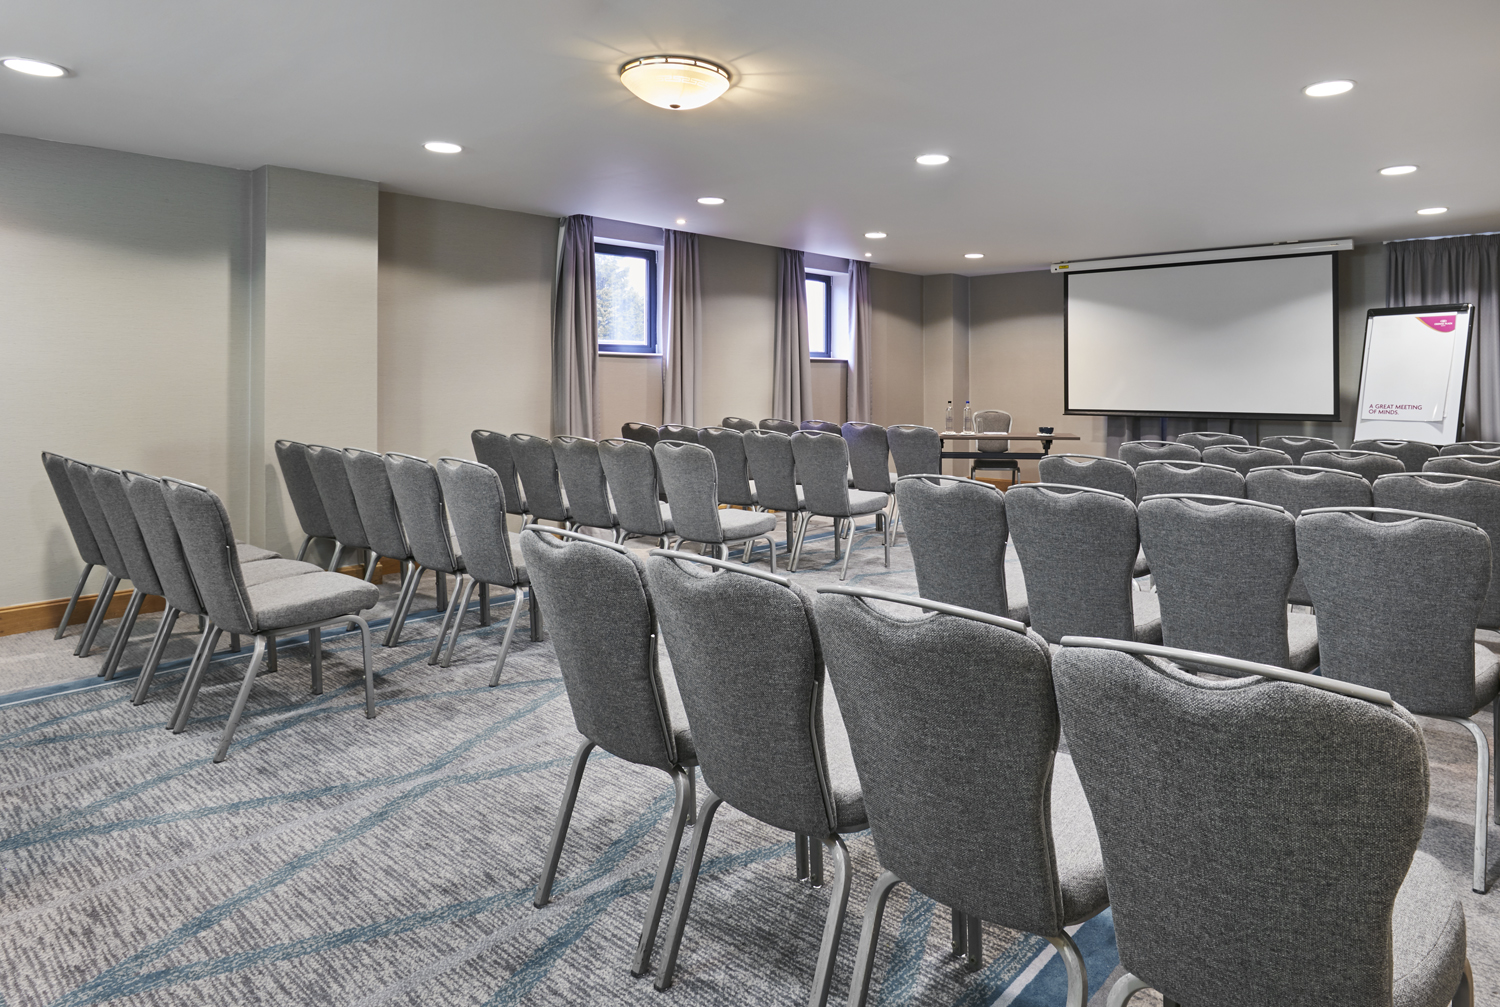 The Cottonwood meeting room in the Great Oak conference Centre Belfast